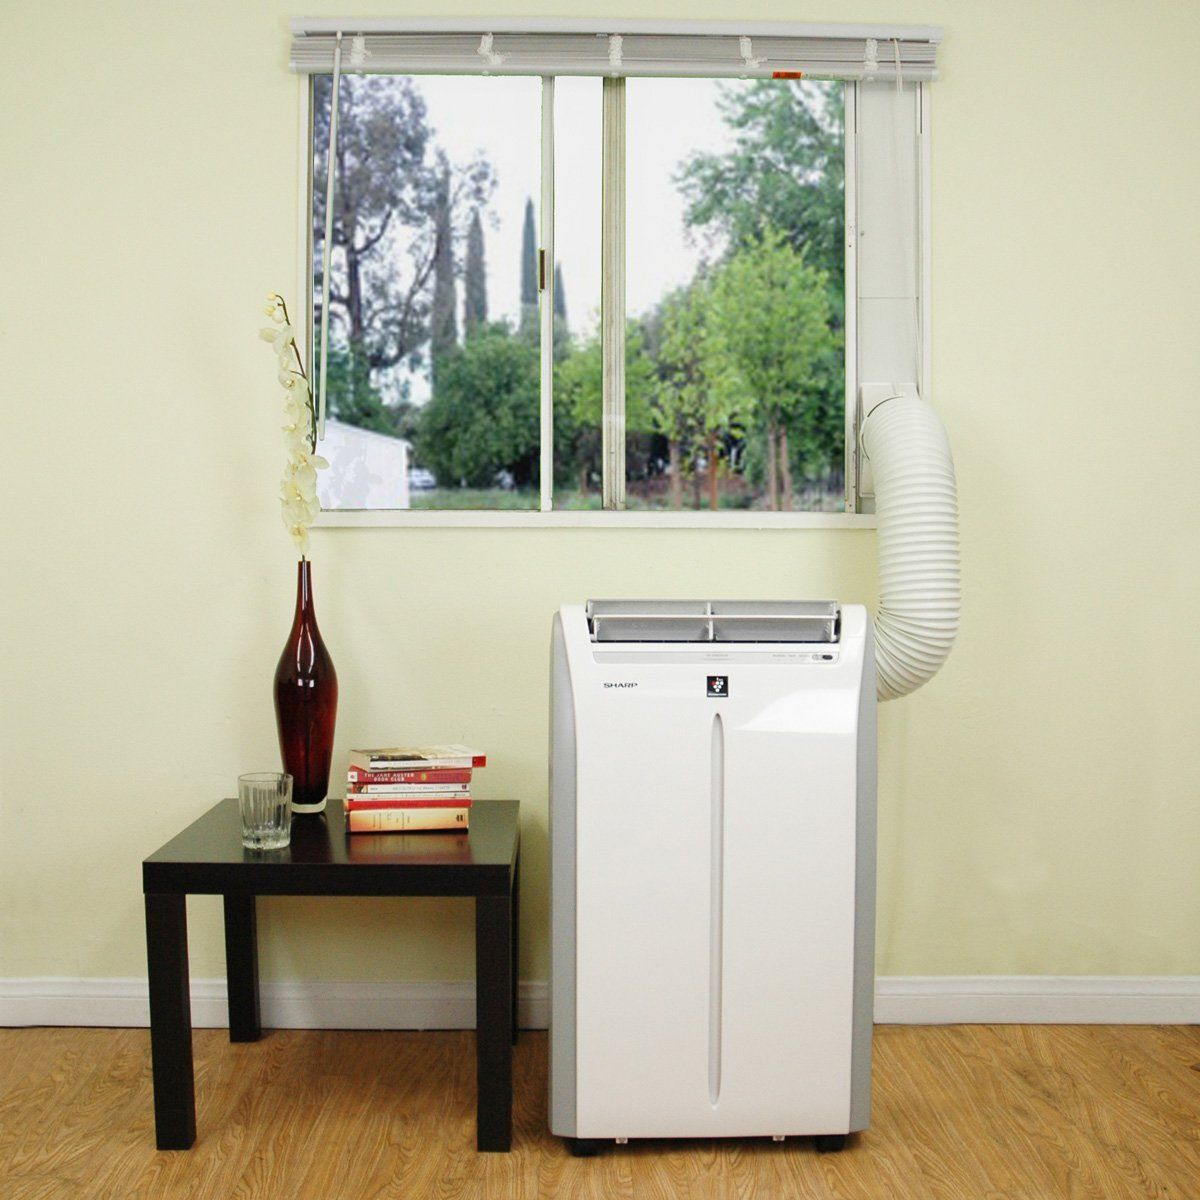 Portable Air Conditioner With Sliding Glass Door Kits | Small .